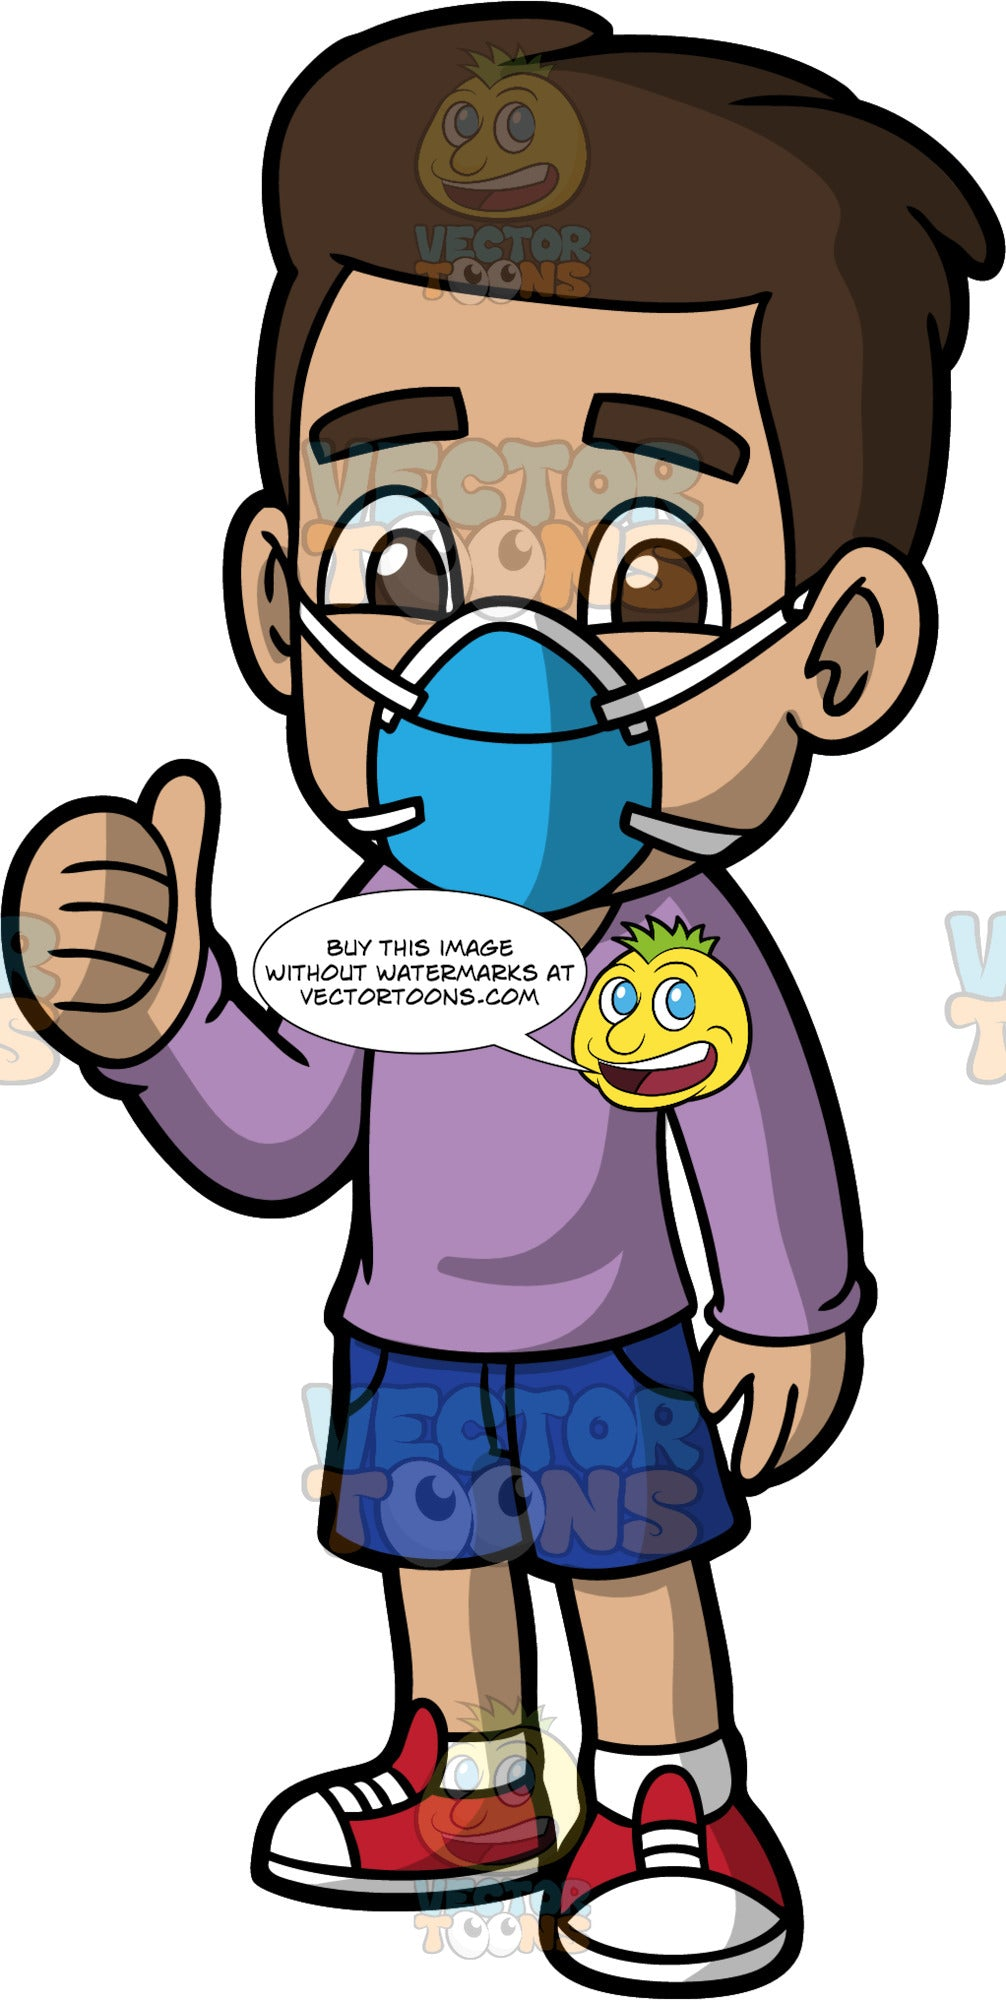 Young Gabriel Wearing A Protective Face Mask. A Hispanic boy wearing dark blue shorts, a long sleeve lavender shirt, red sneakers, and a blue face mask, standing and giving the thumbs up